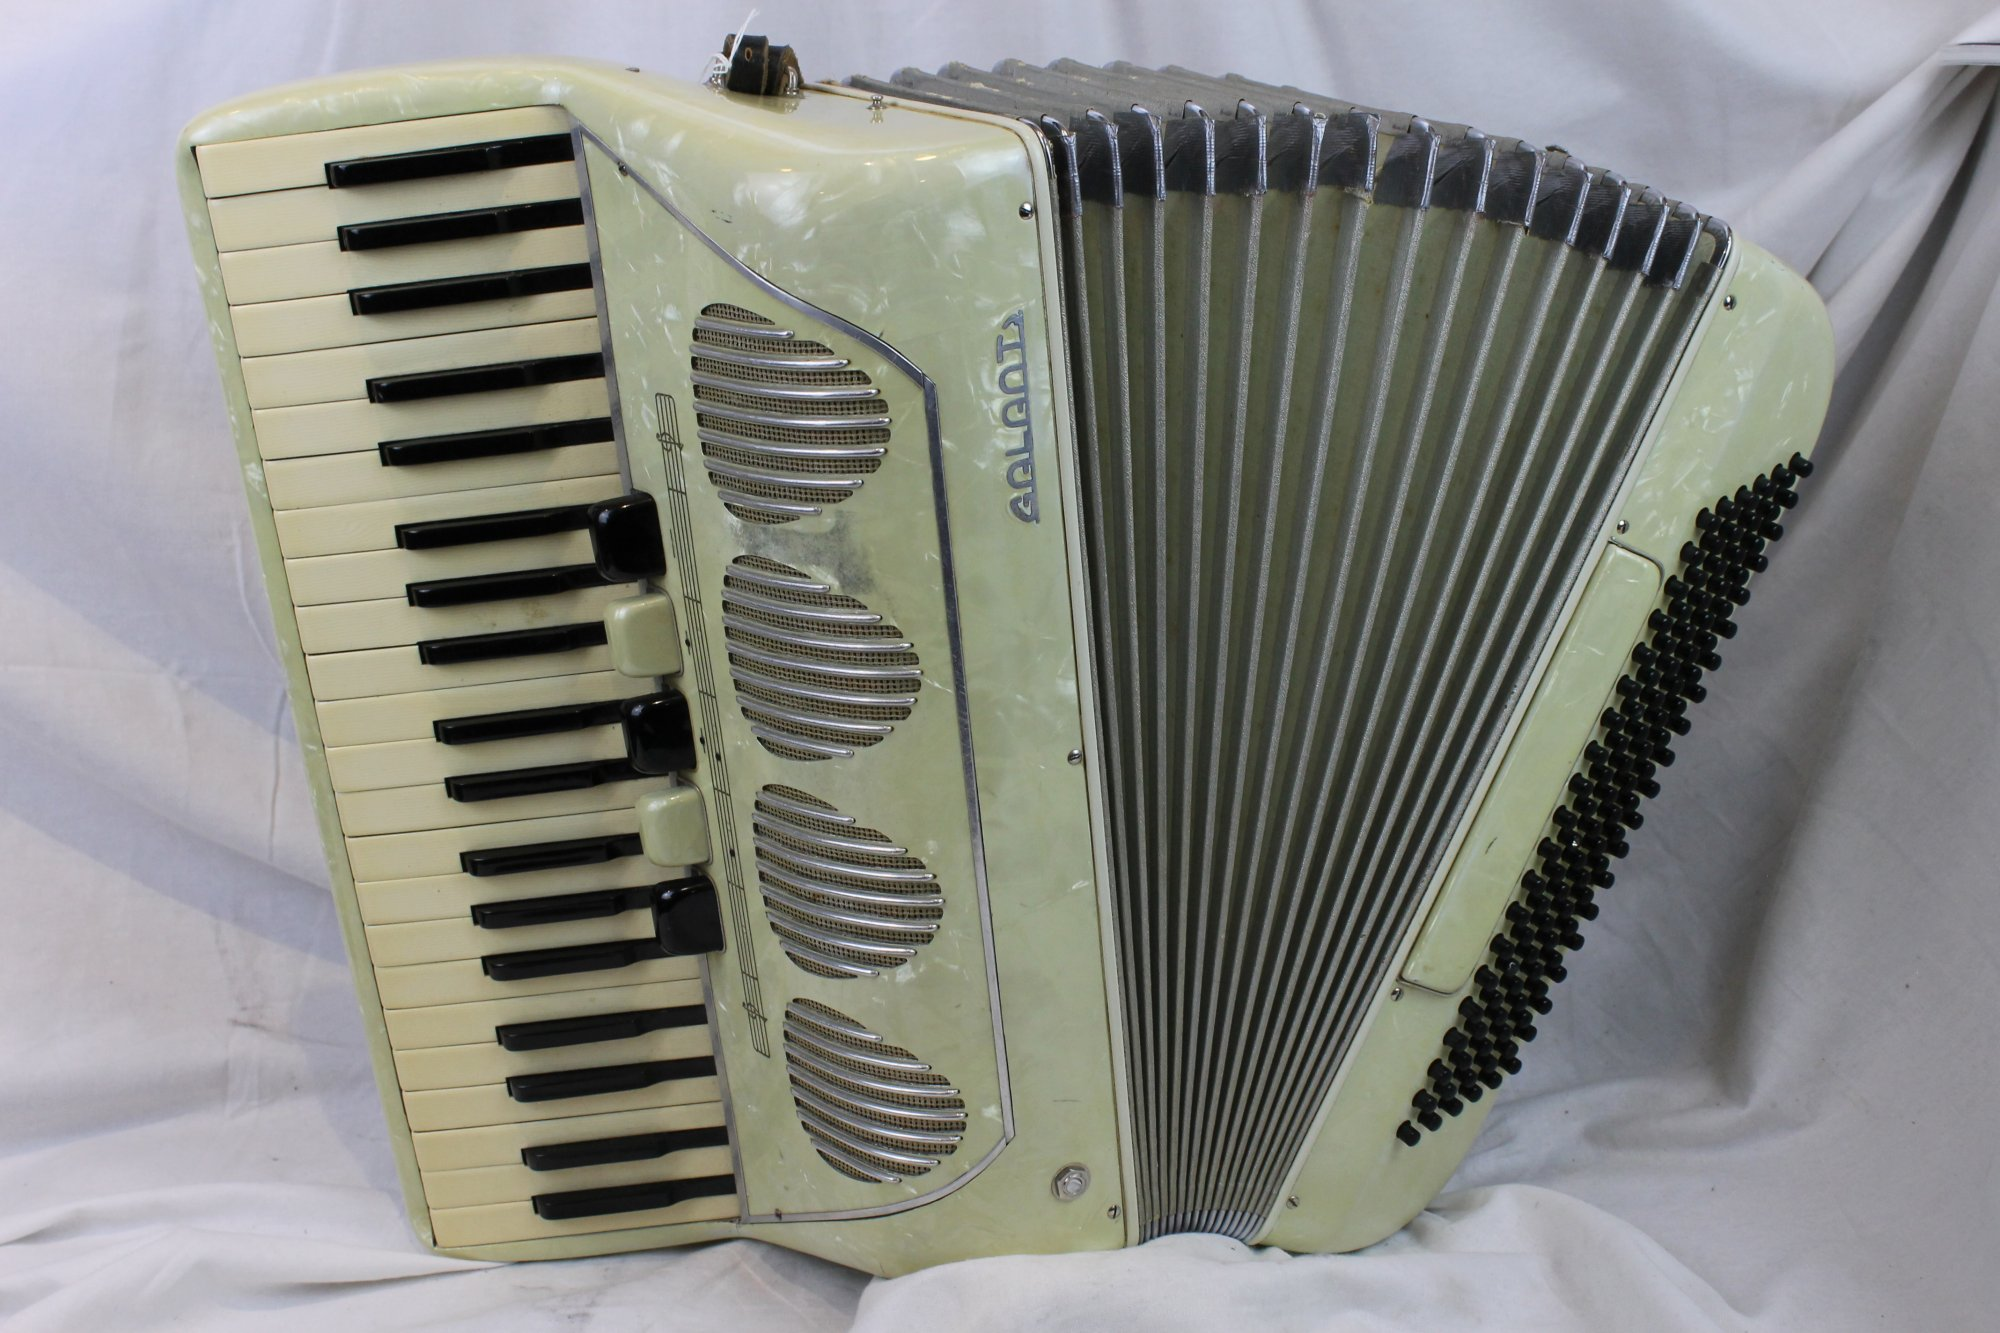 3118 - Cream Galanti Piano Accordion LMM 41 120